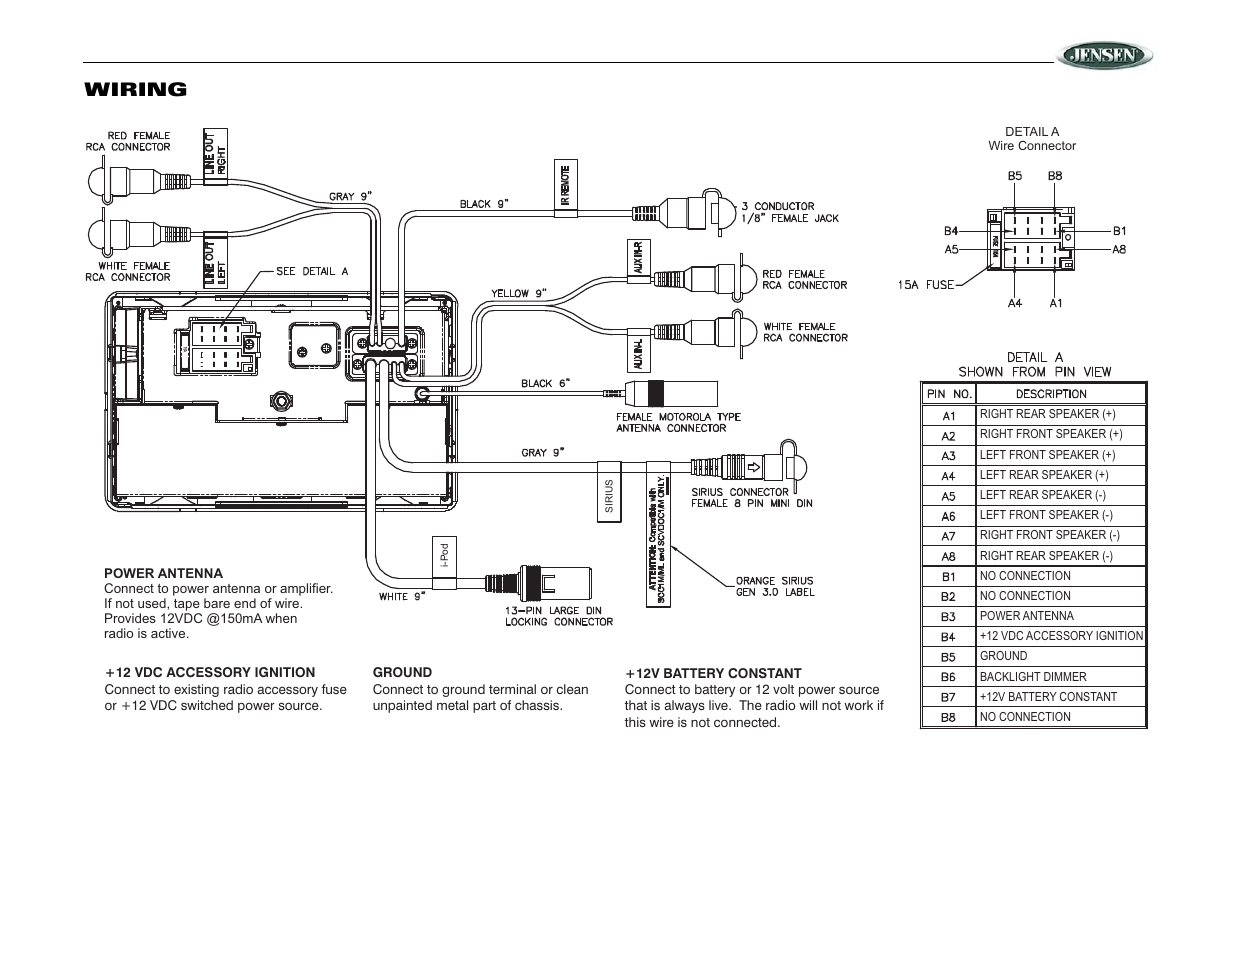 jensen radio wiring harness jrv210, wiring | jensen jrv210 user manual | page 5 / 20 jensen radio wiring diagram